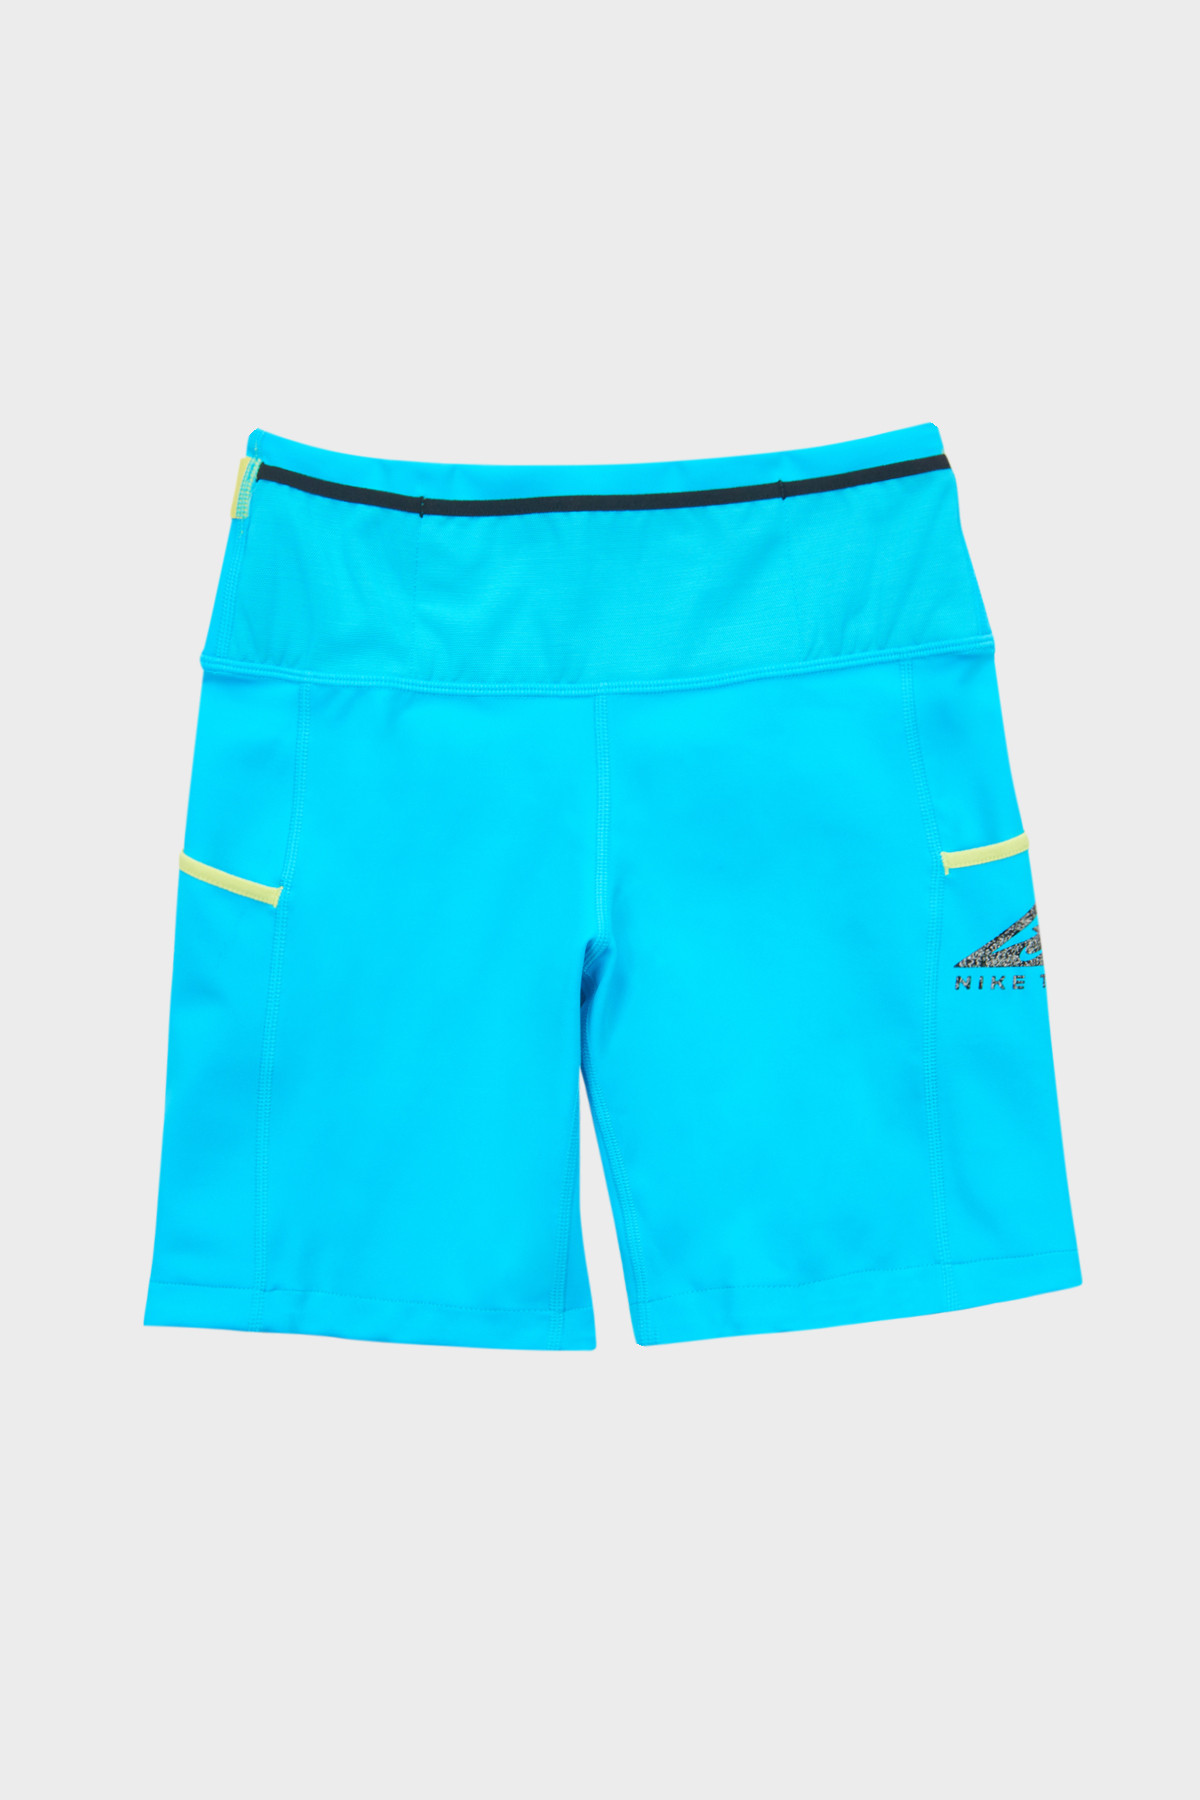 NIKE TRAIL - W EPIC LUXE TIGHT - CHLORINE BLUE